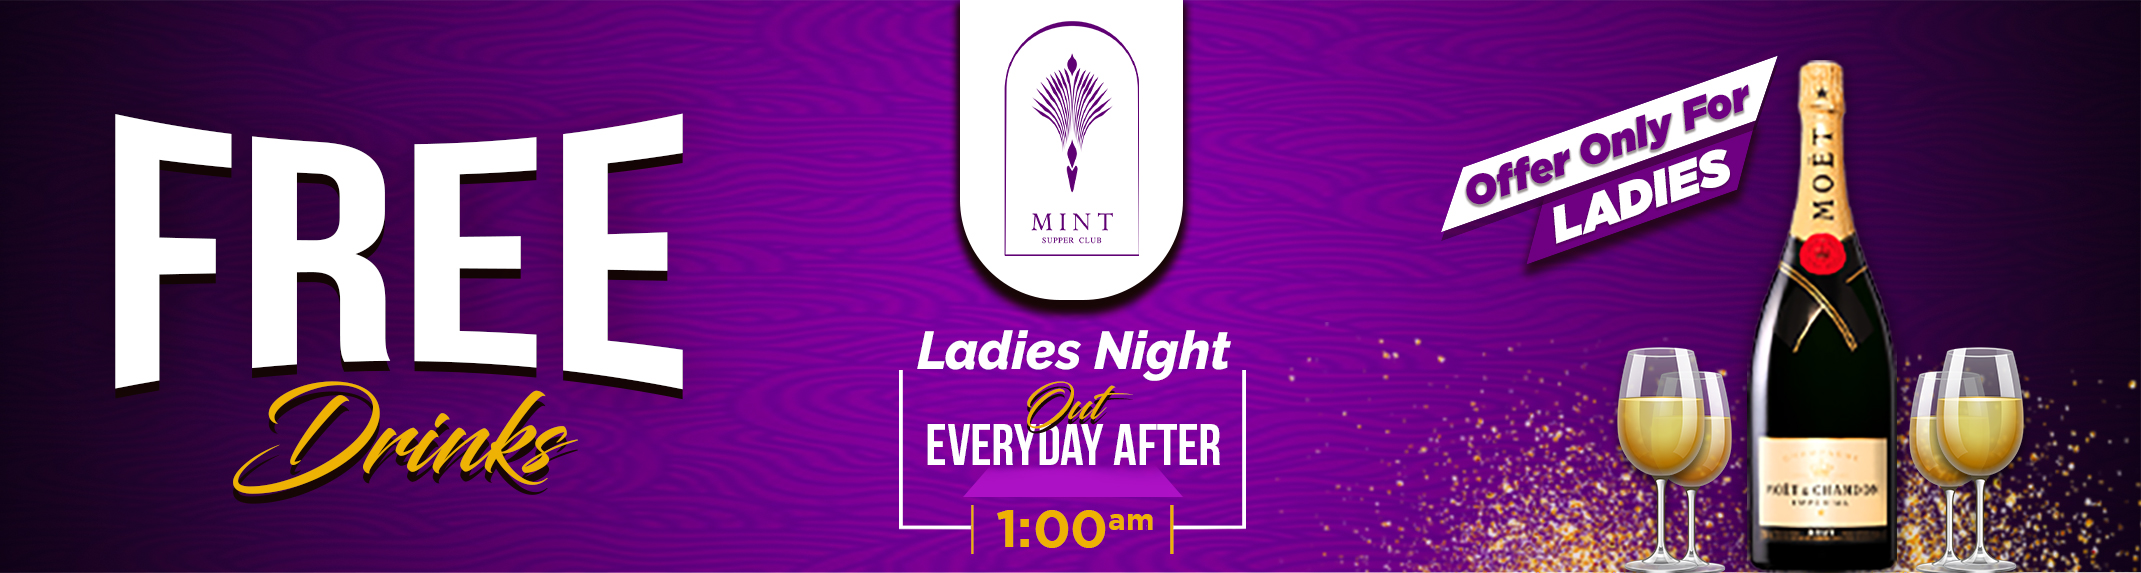 Mint Free drinks for ladies night out